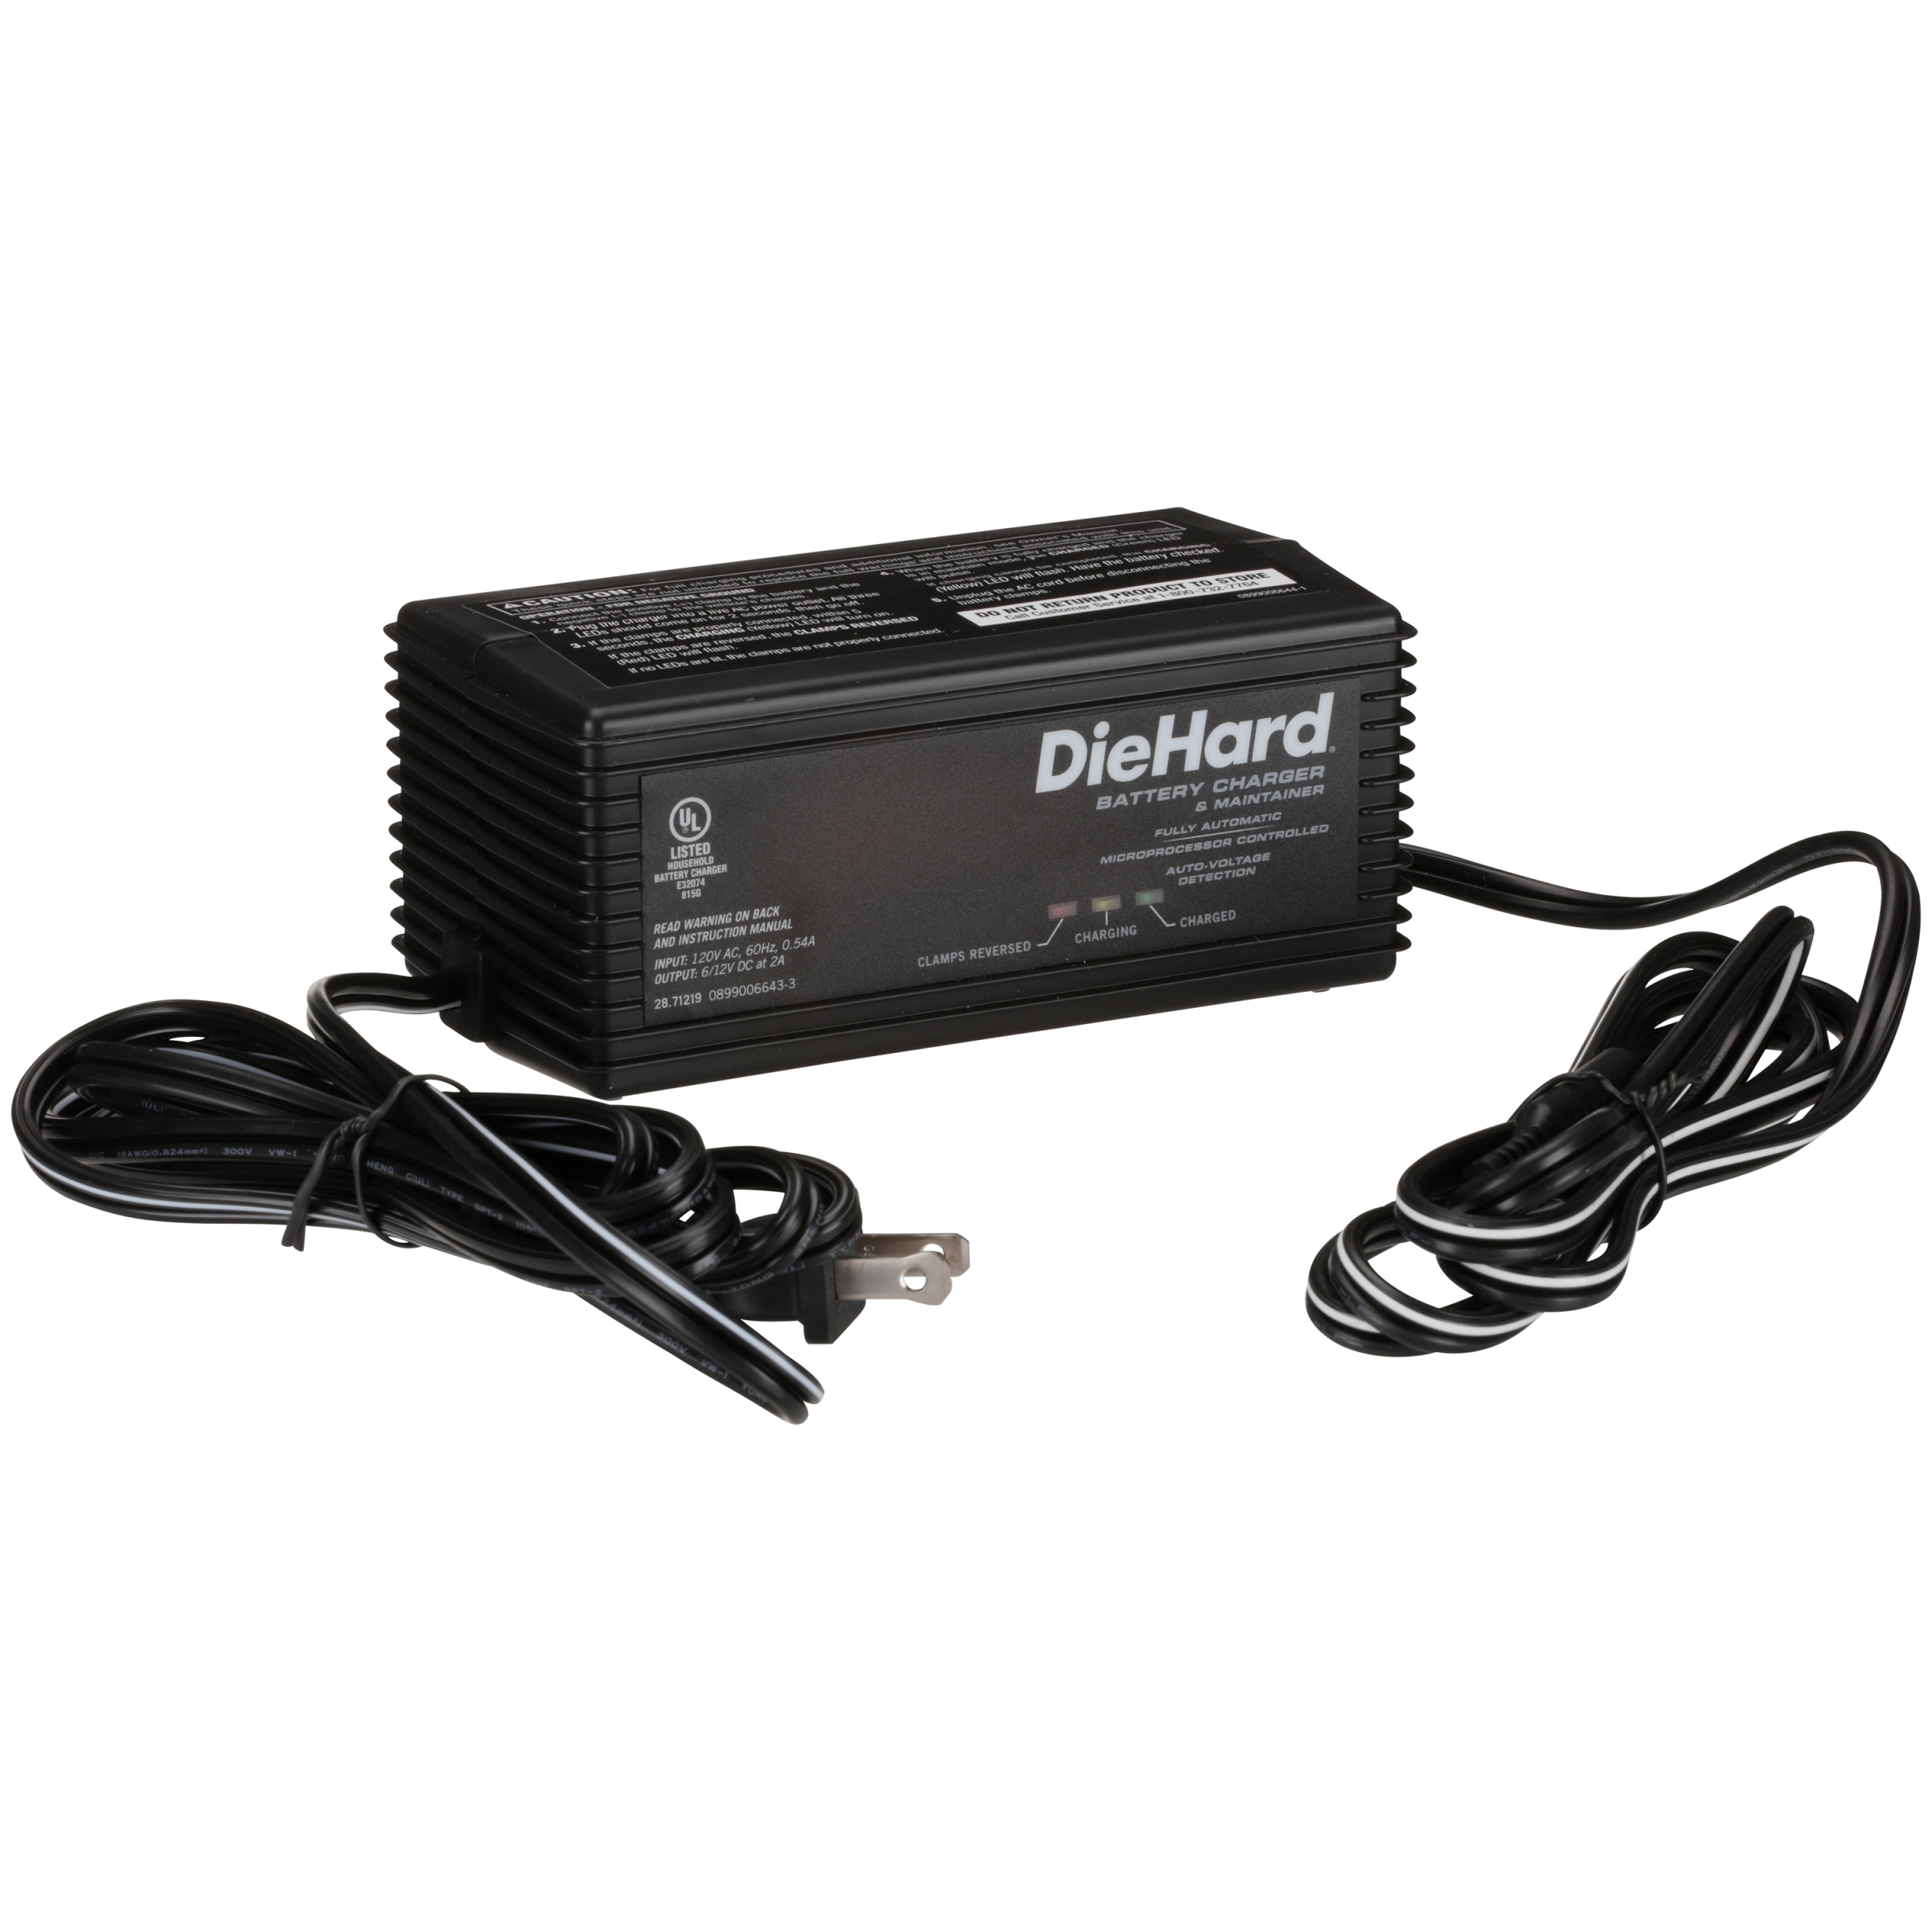 DieHard 6/12V Battery Charger and Maintainer